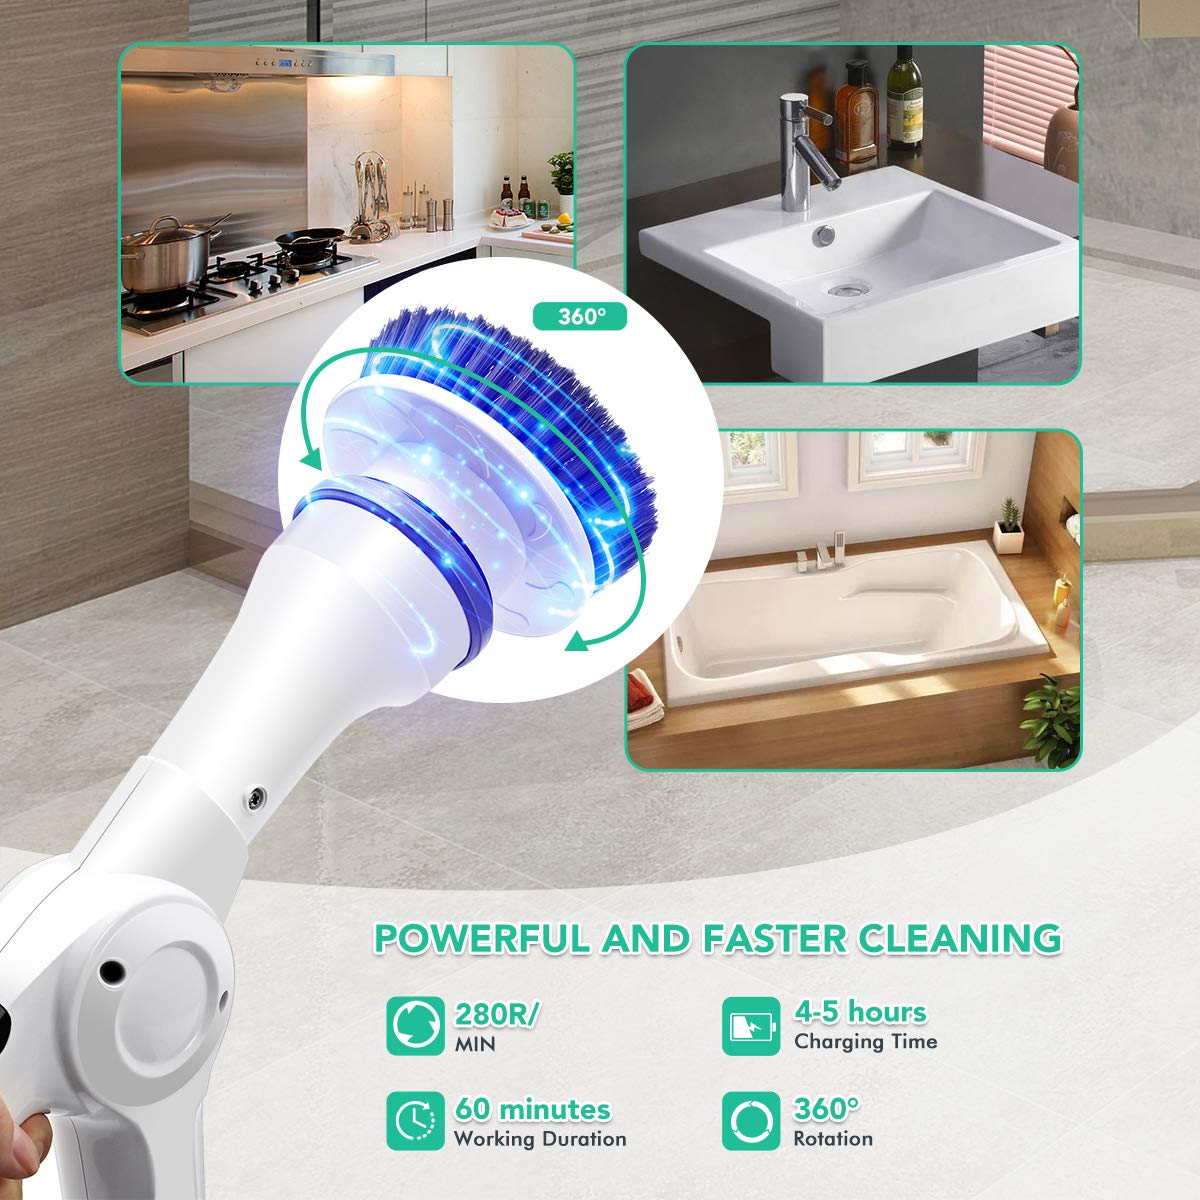 MECO Electric Spin Scrubber Power Cordless Tub and Tile Scrubber, 360 Handheld Cleaning supplies with 3 Replaceable Brush Heads, High Rotation for Bathroom, Floor, Kitchen, Car, Sink, Wall, Window by MECO (Image #6)